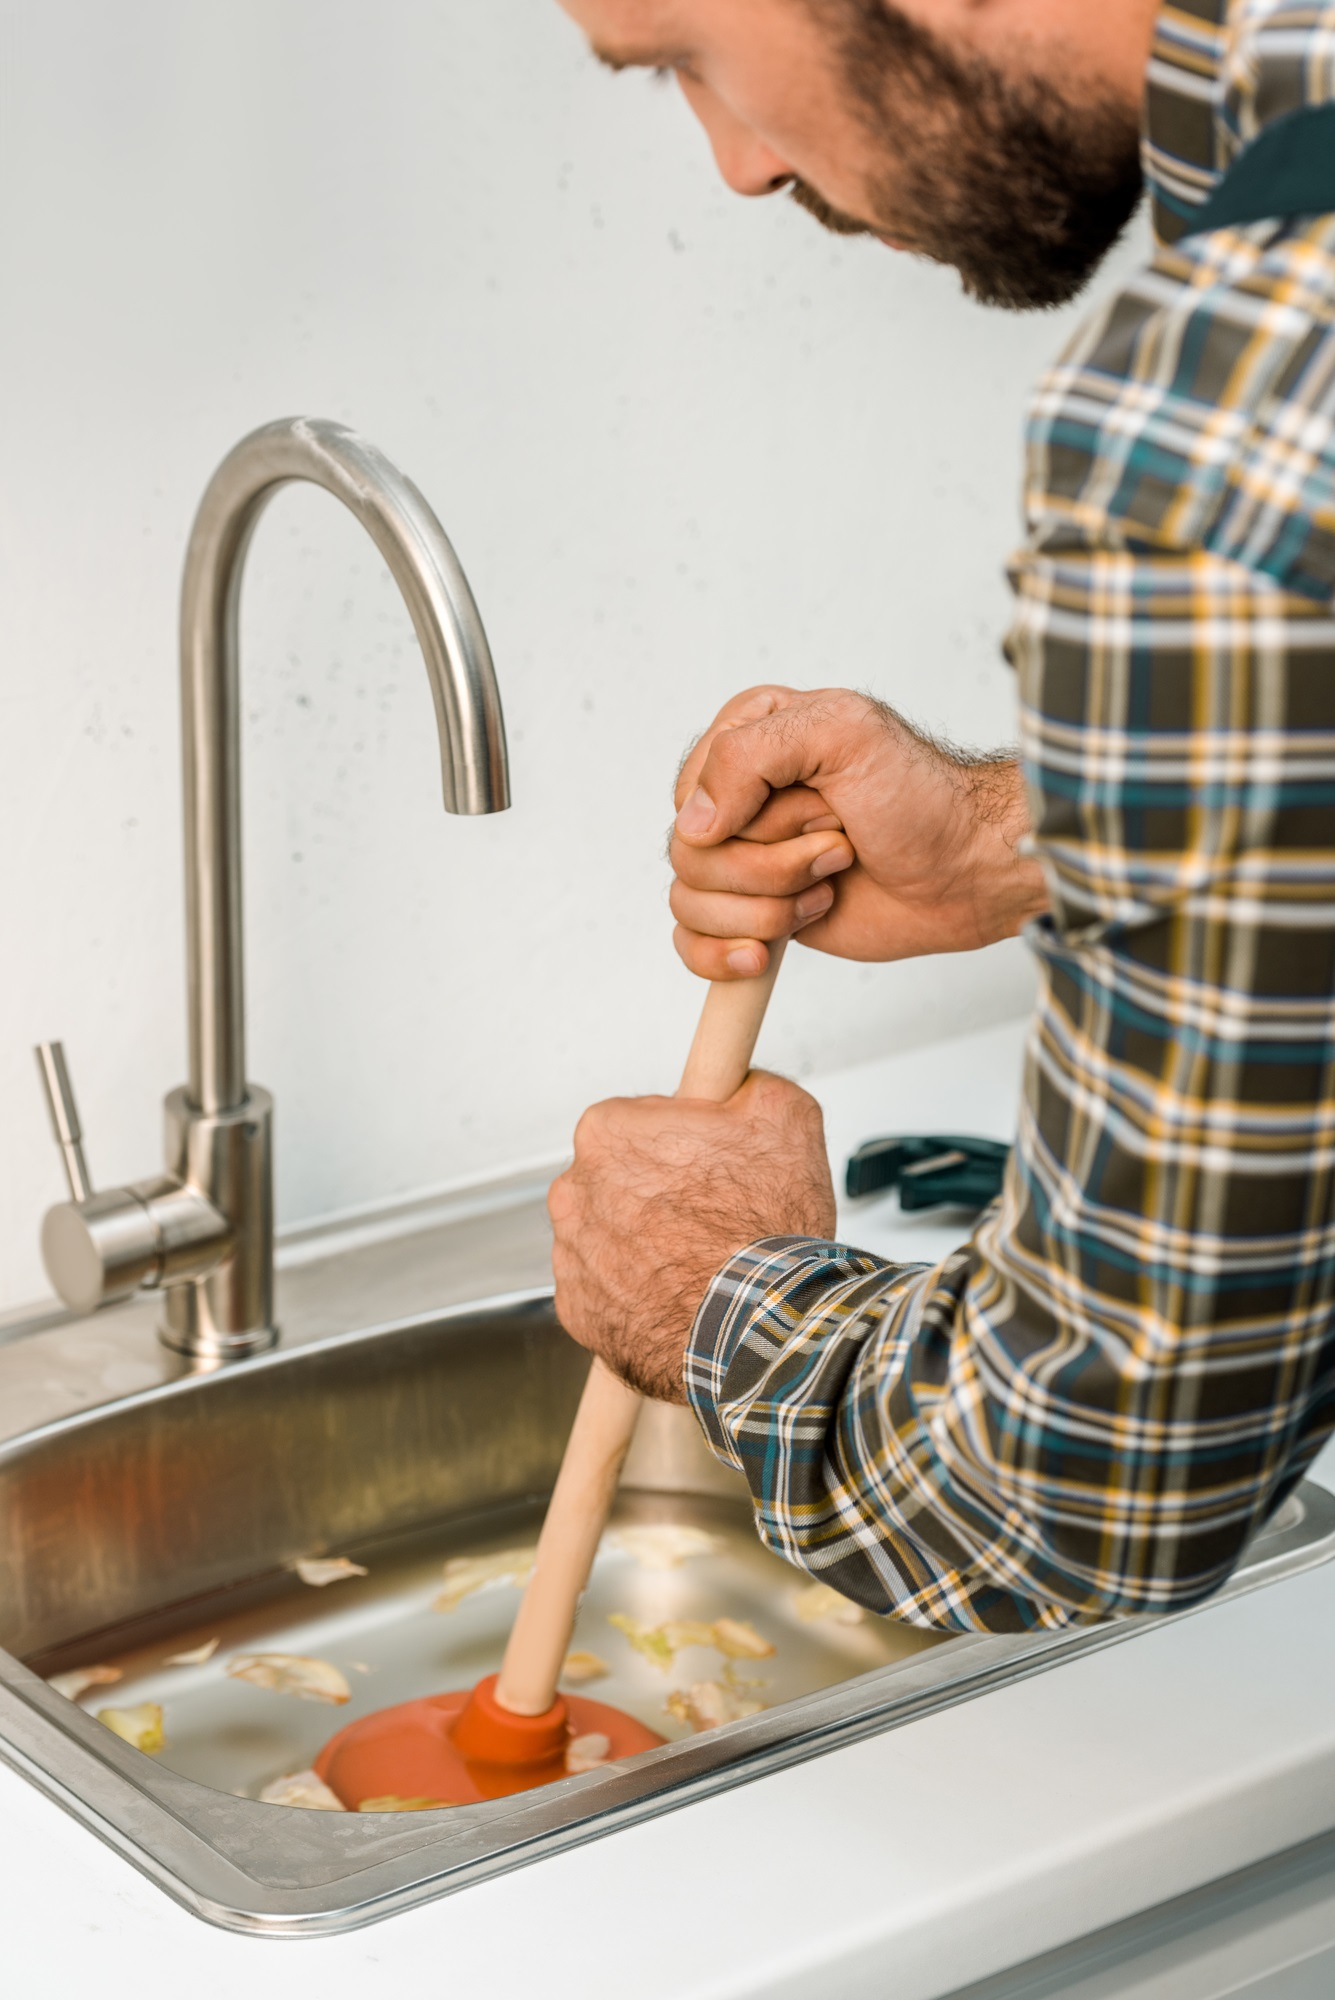 How To Fix A Stinky Drain Baity Plumbing Co Thomasville Nearsay